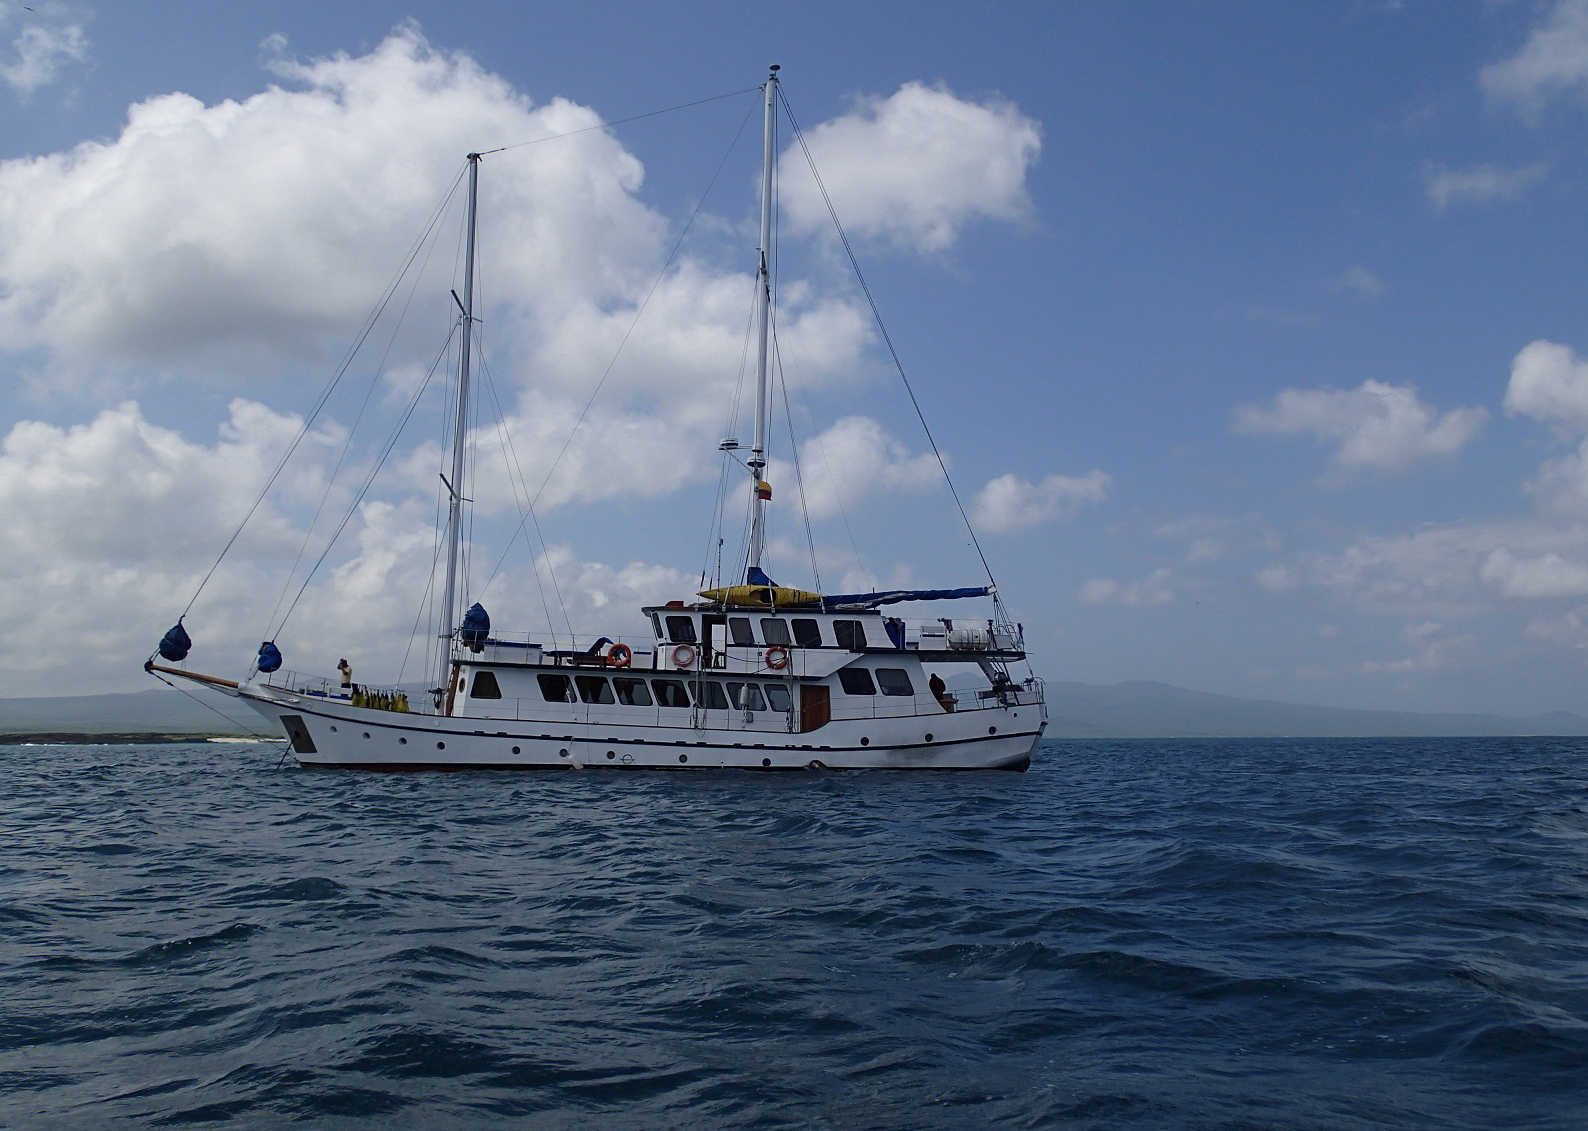 Our ship in the Galapagos